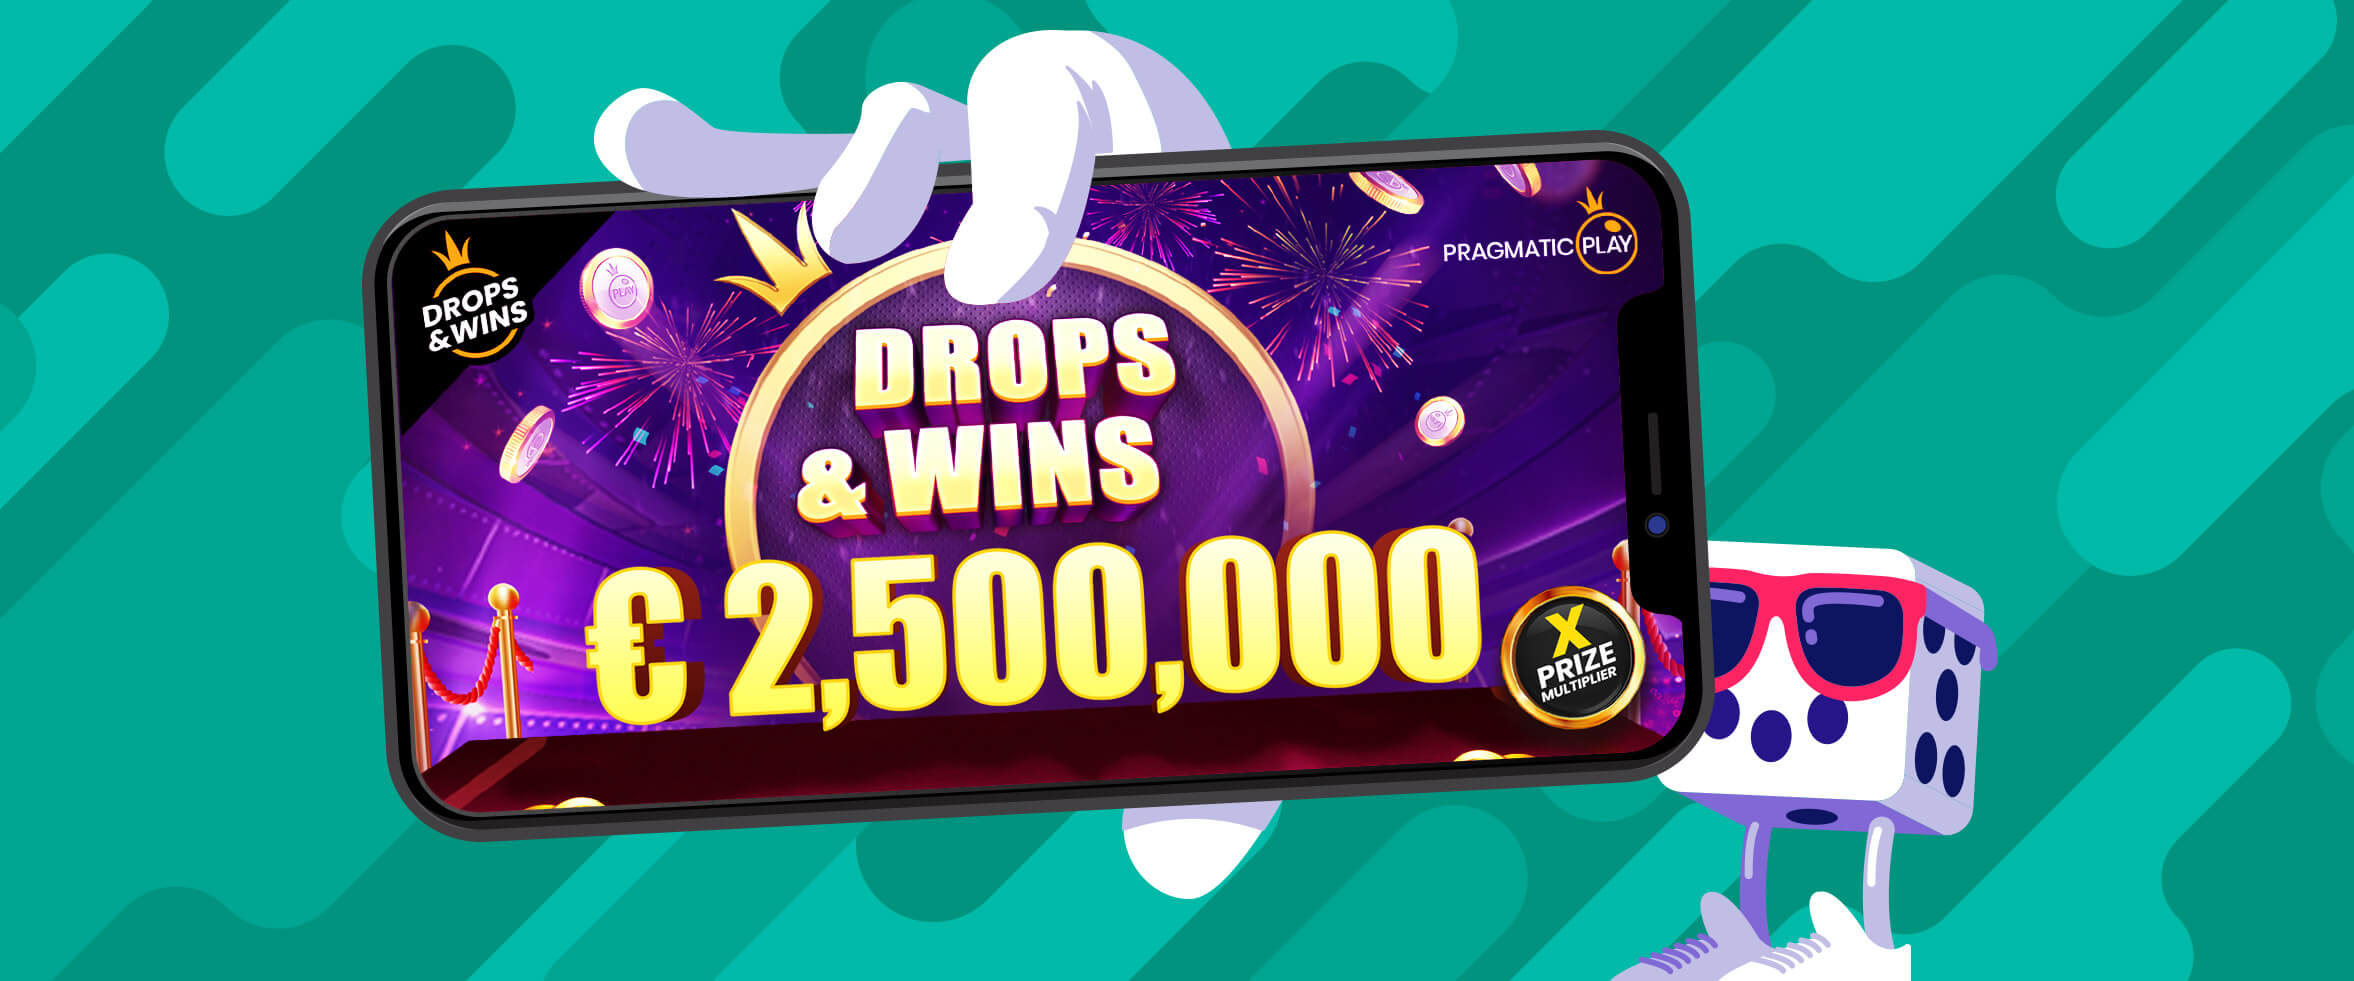 Drops and Wins Returns with ₹250,000,000 in Prizes